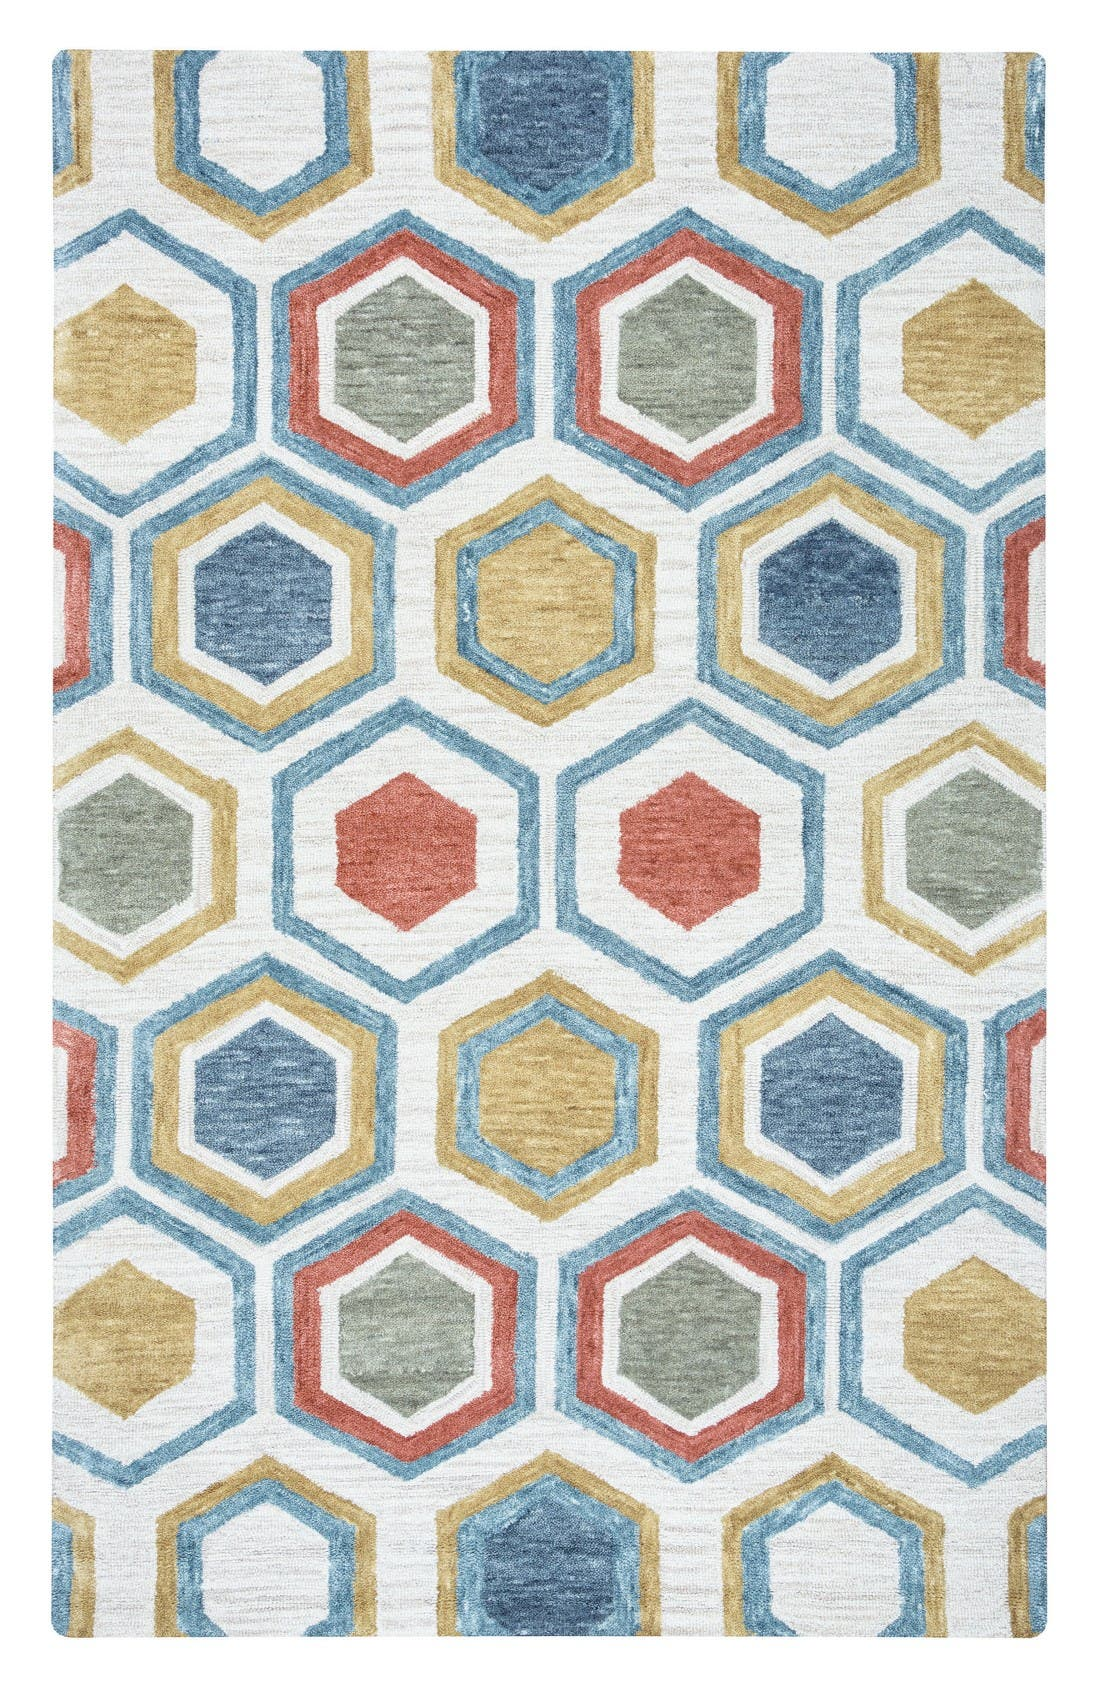 'Lancaster Geometric' Hand Tufted Wool Area Rug,                         Main,                         color, Grey/ Multi